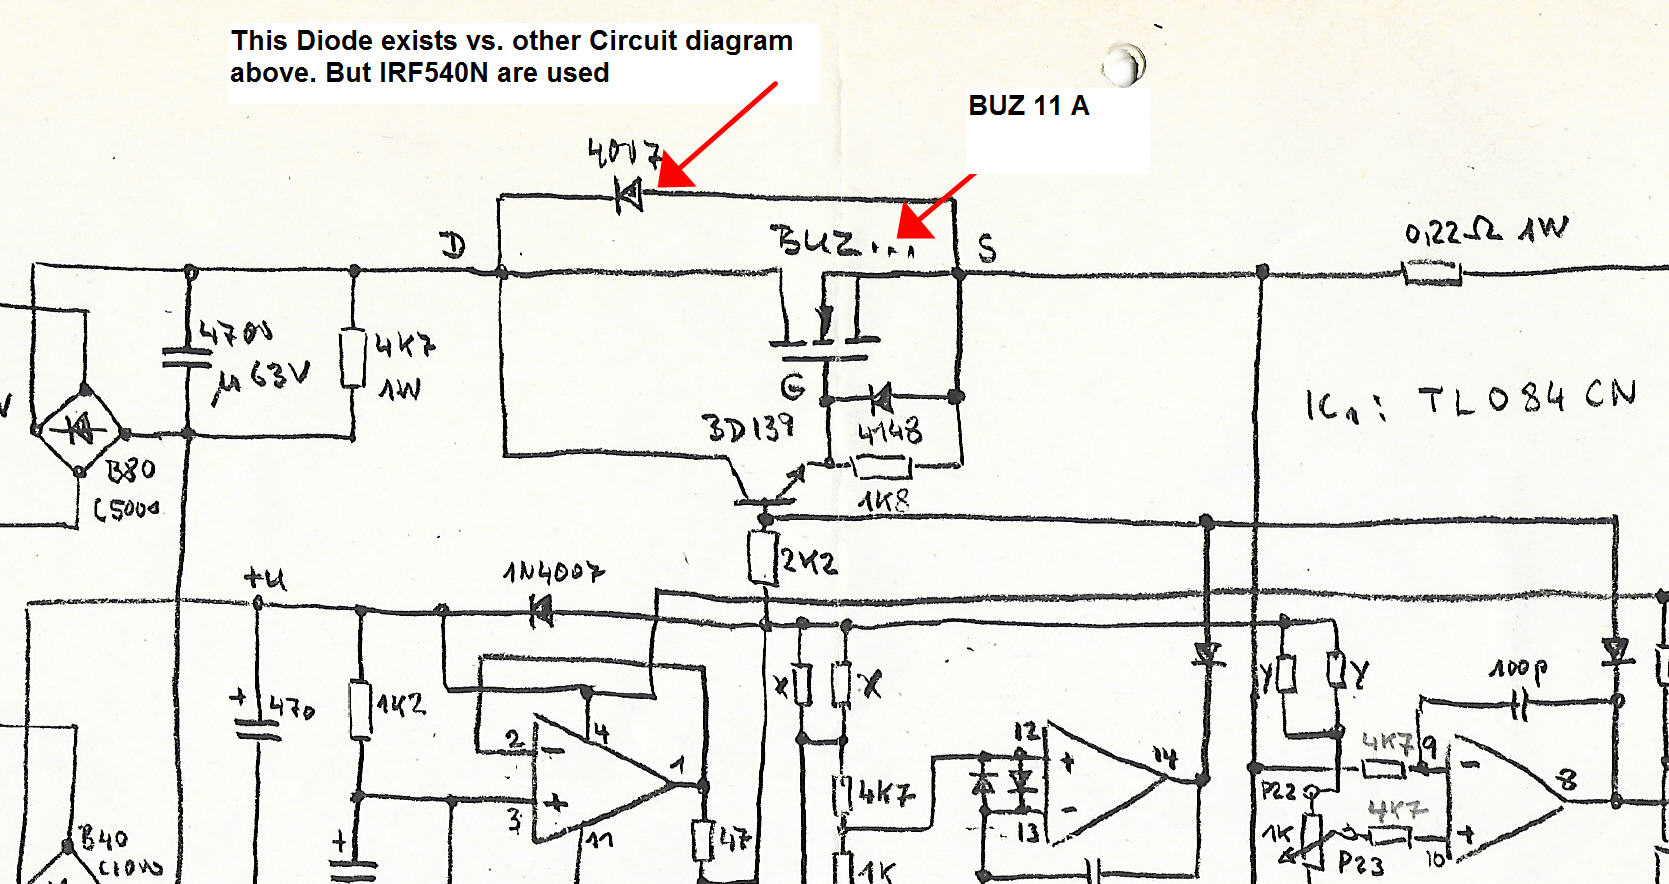 Some huge problems paralleling MOSFETs (Linear Power